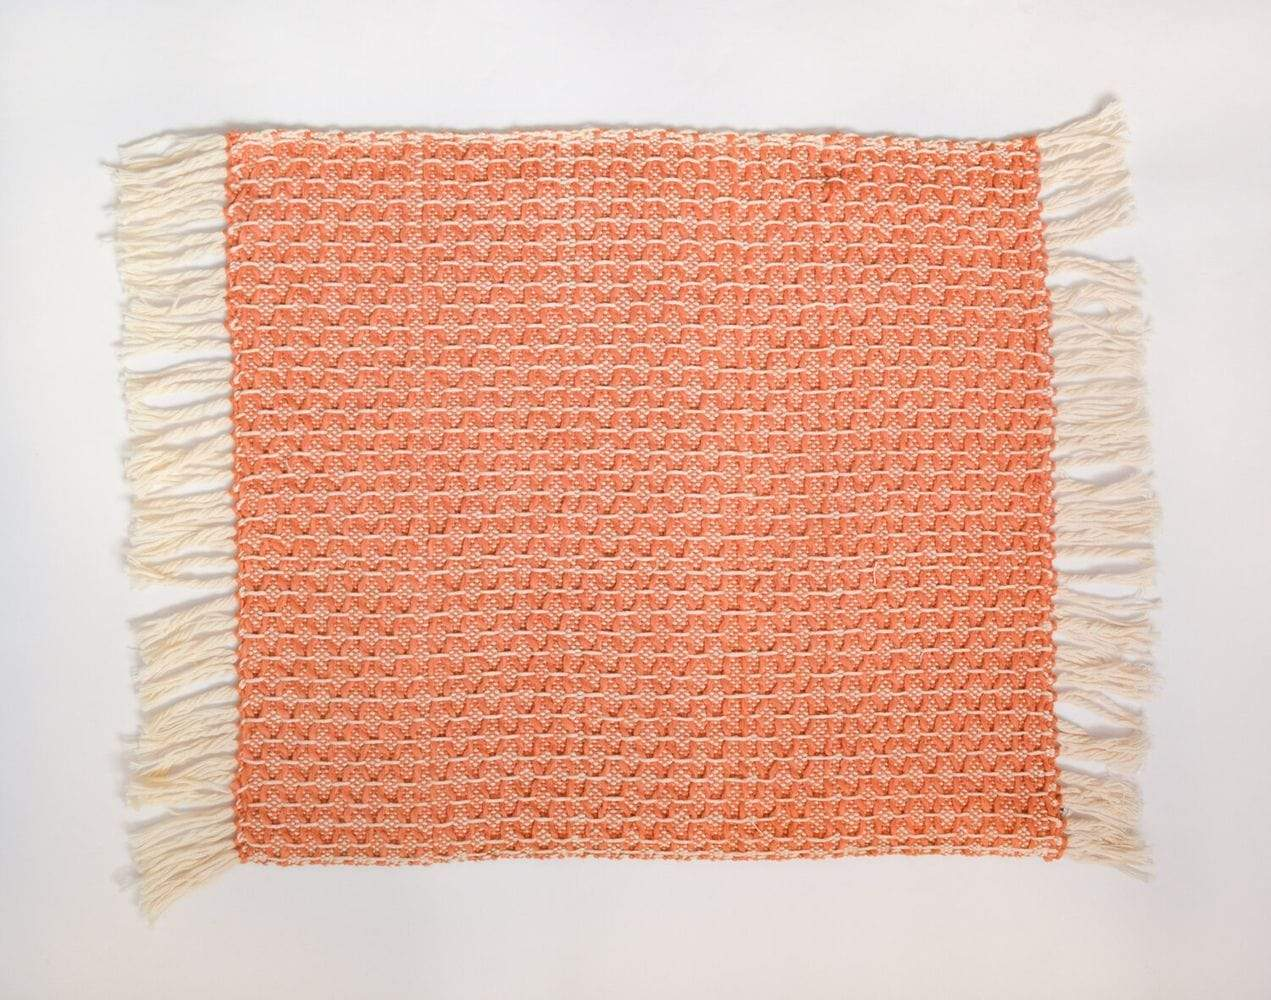 Zuahaza Placemat Diamond Uchuva Orange Placemat